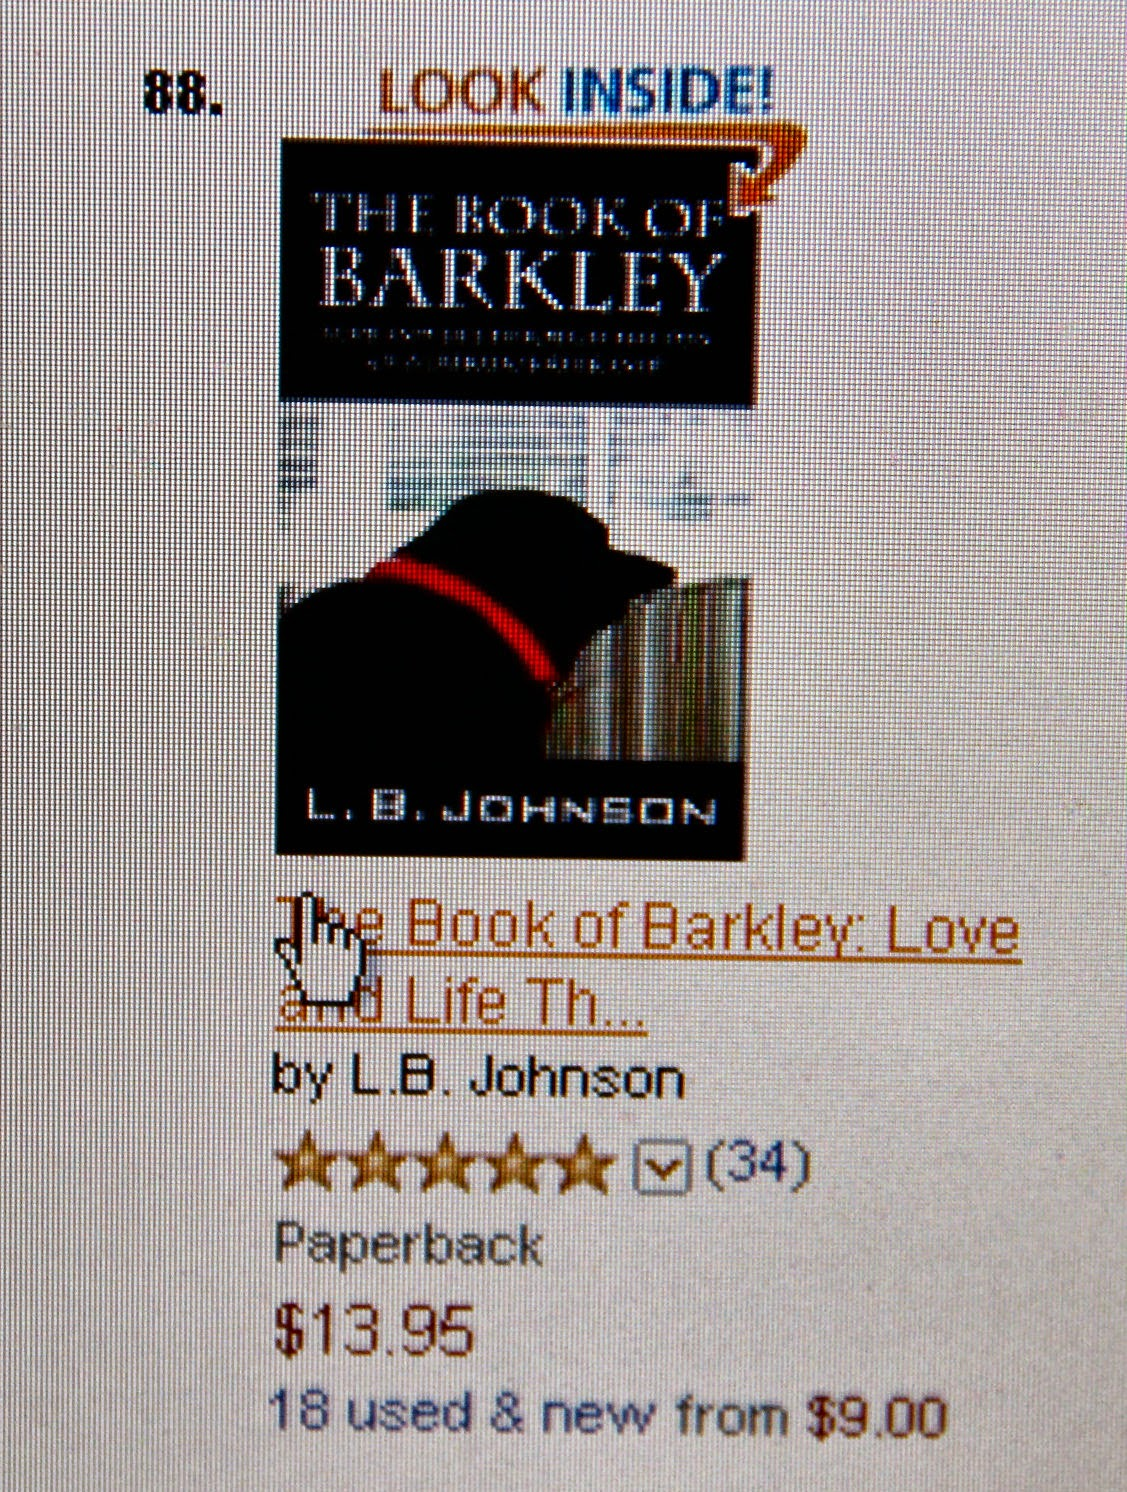 Barkley Made Amazon's Top 100